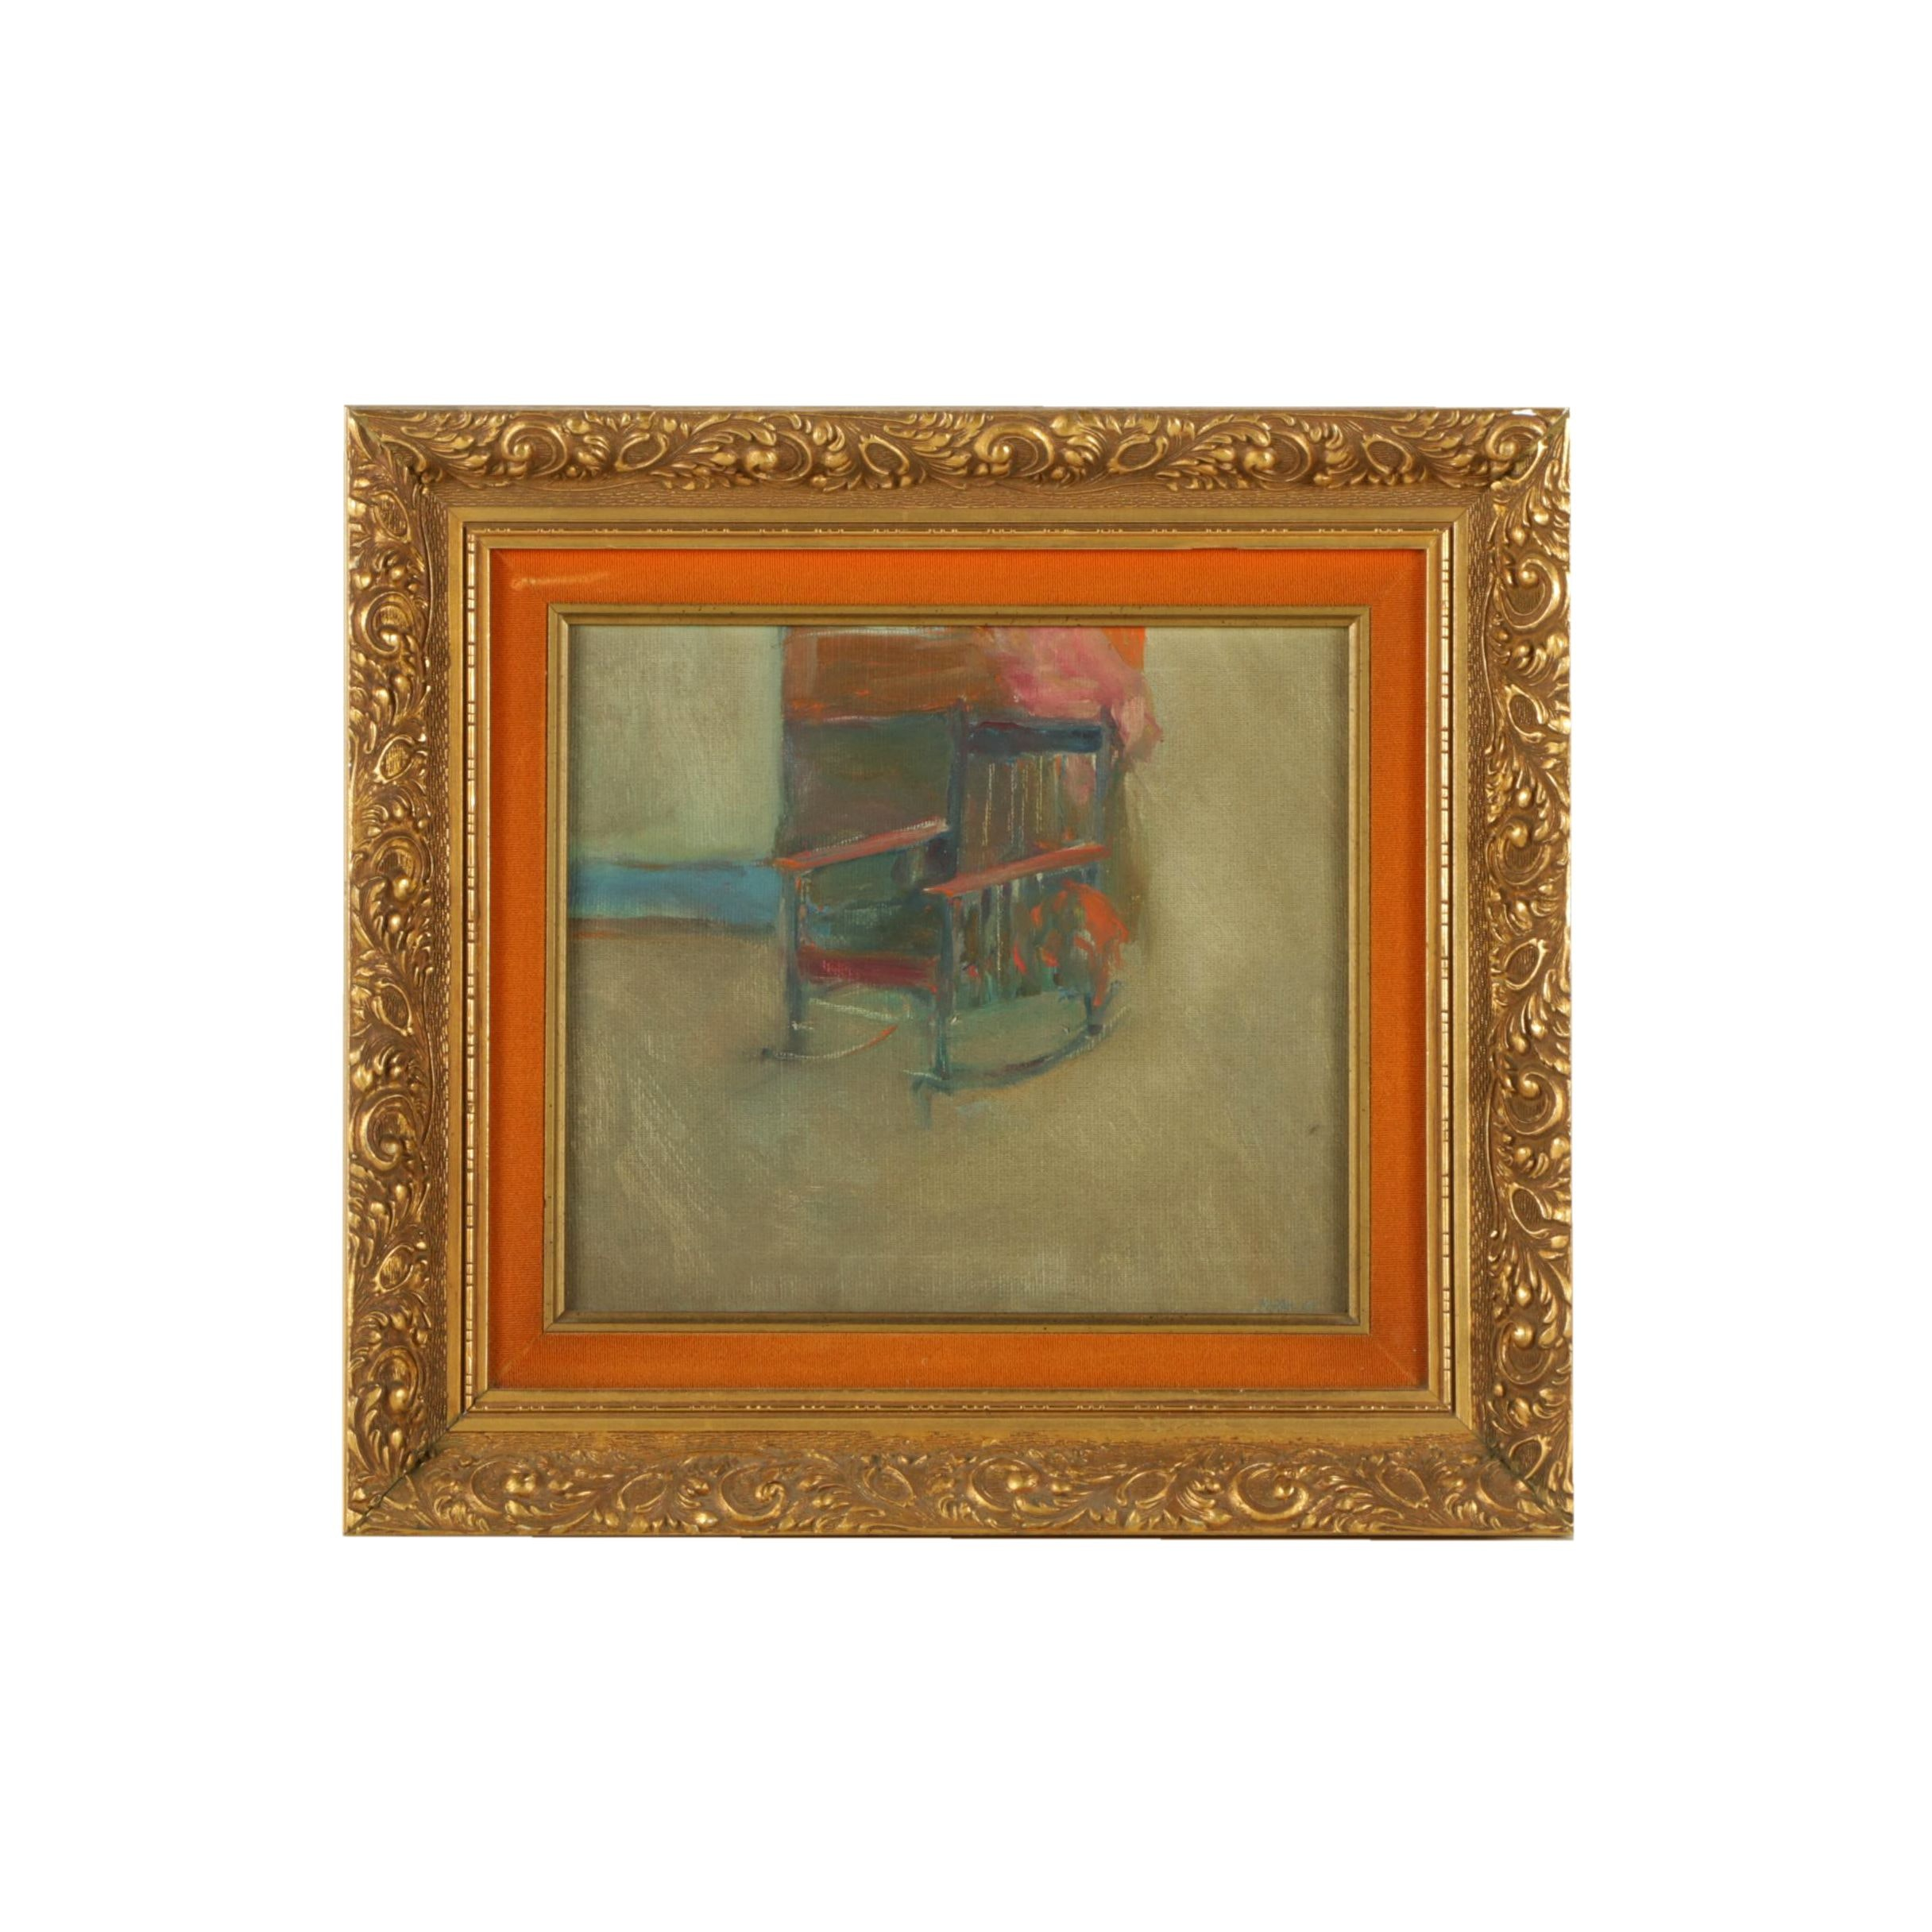 Marsh Oil Painting on Canvas of a Rocking Chair